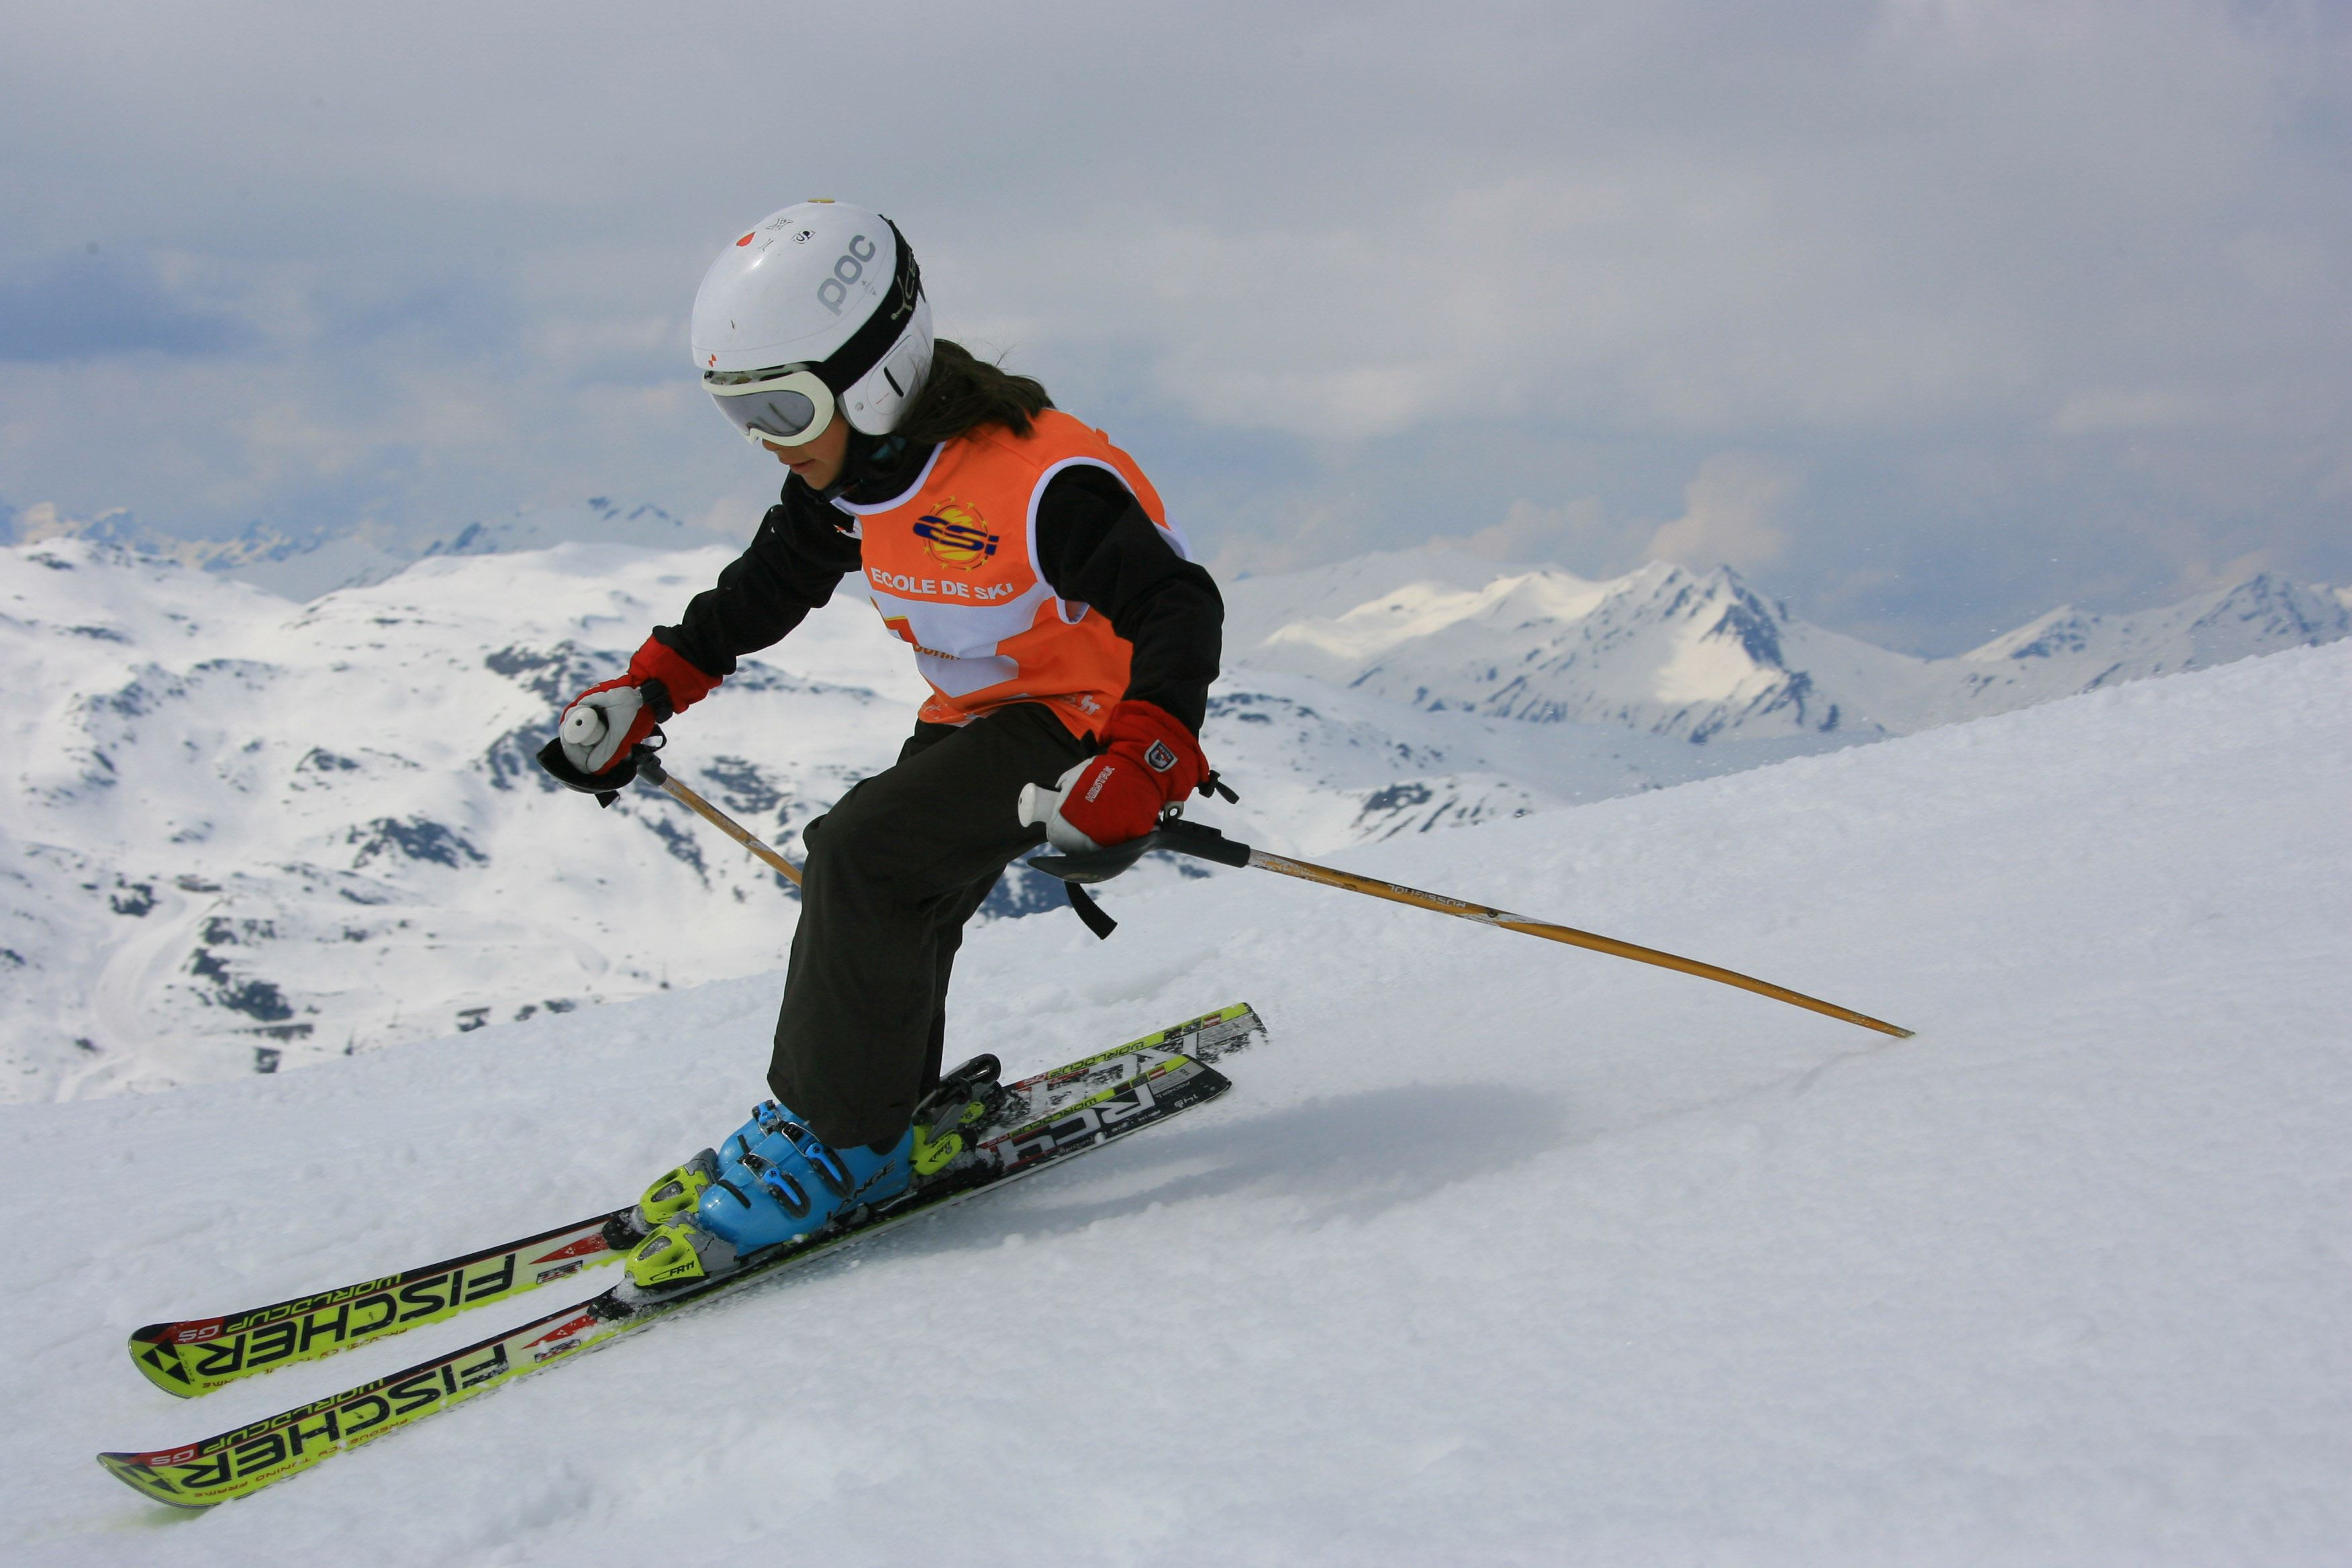 Afternoon Ski Group lessons for children from 4 to 12 years old - Prosneige